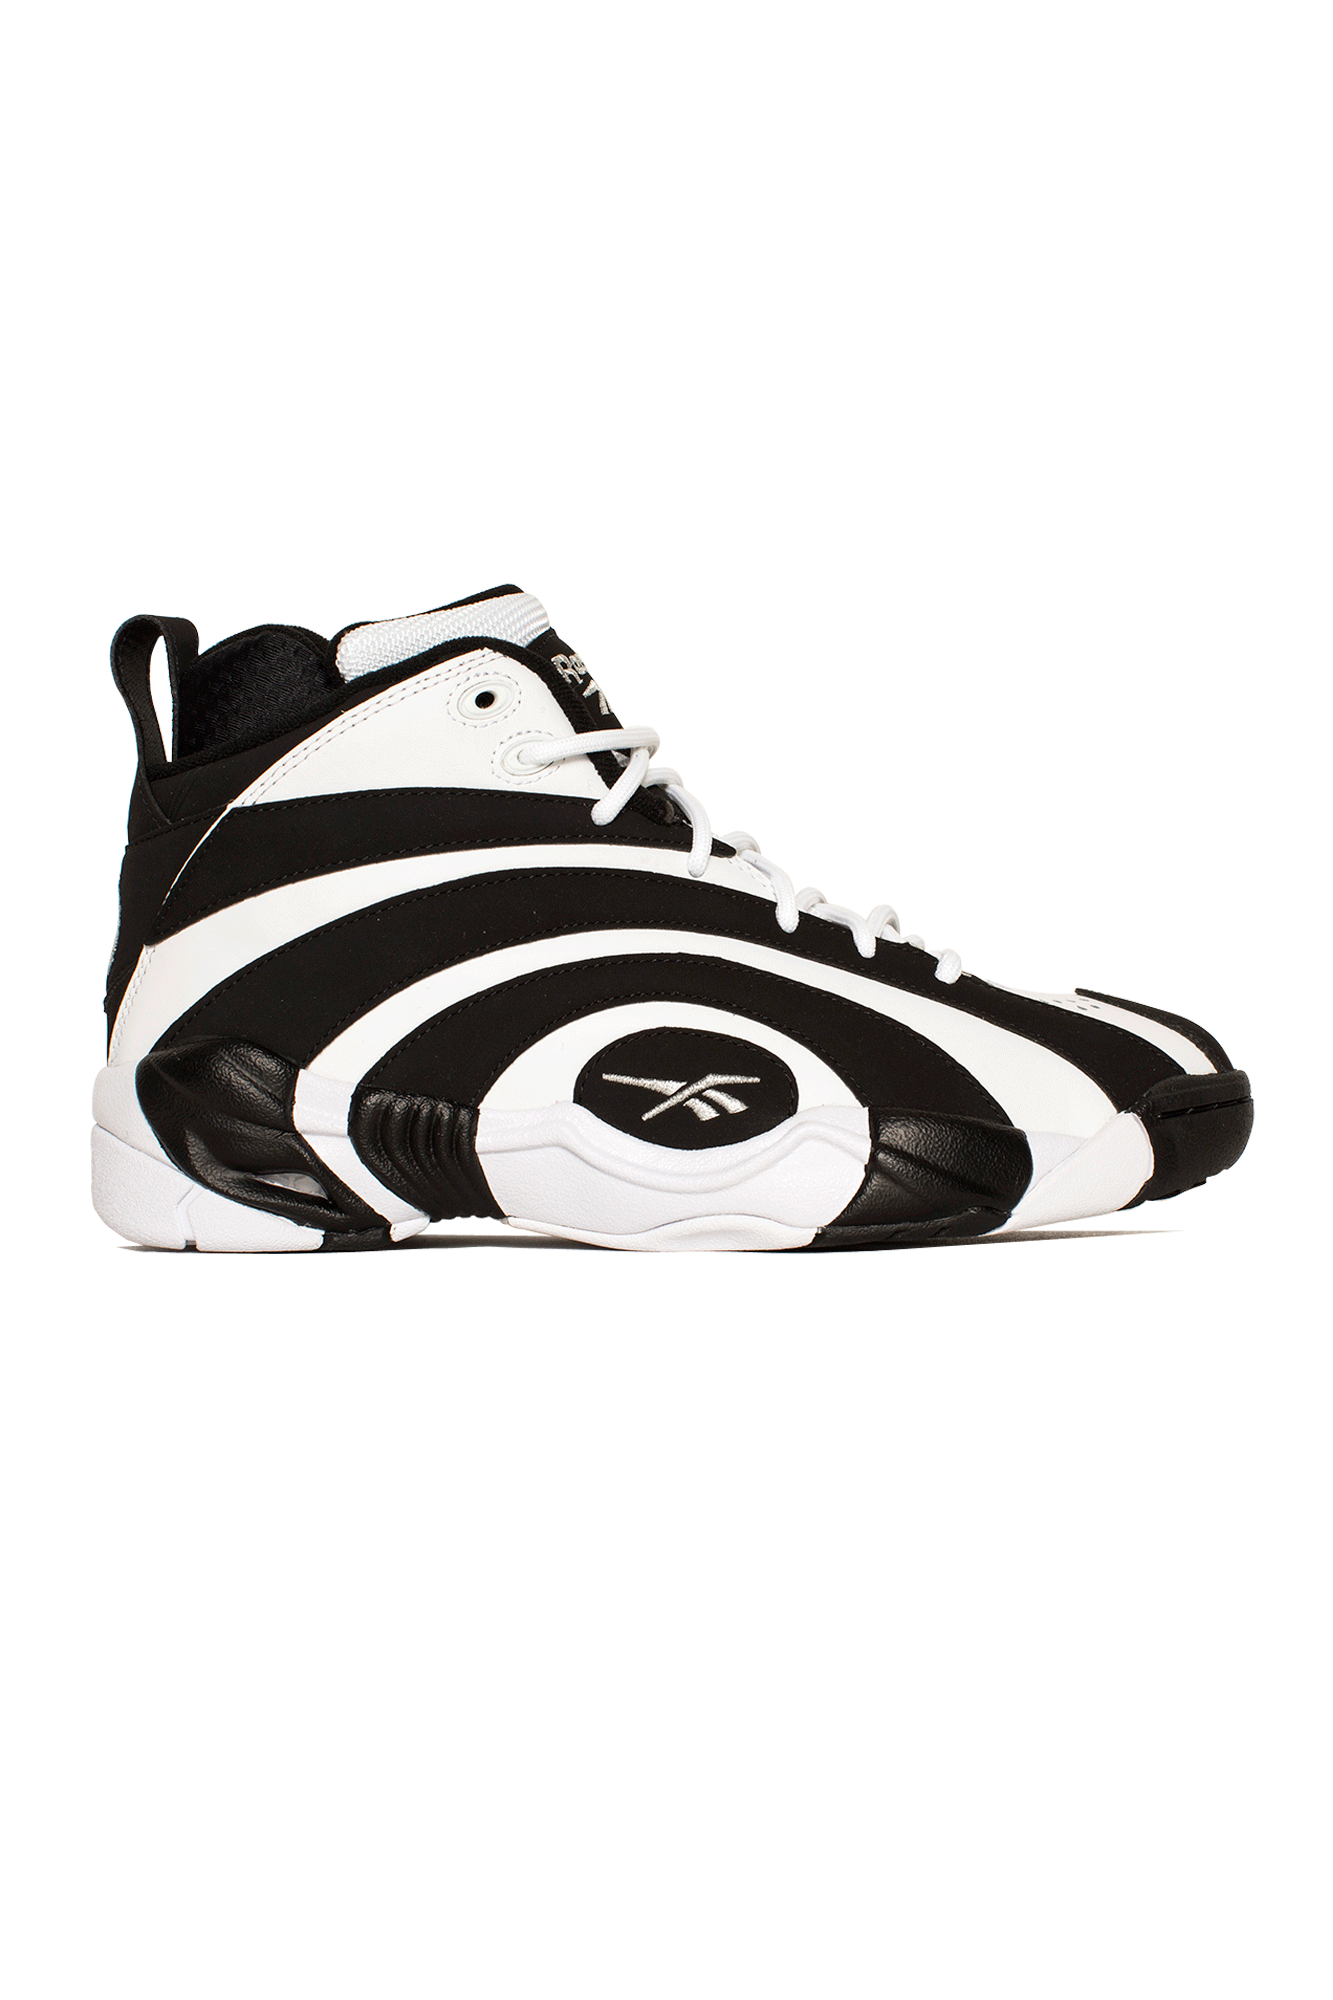 Reebok Sneakers Shaqnosis Nero EF3069#000#BLK#8,5 - One Block Down